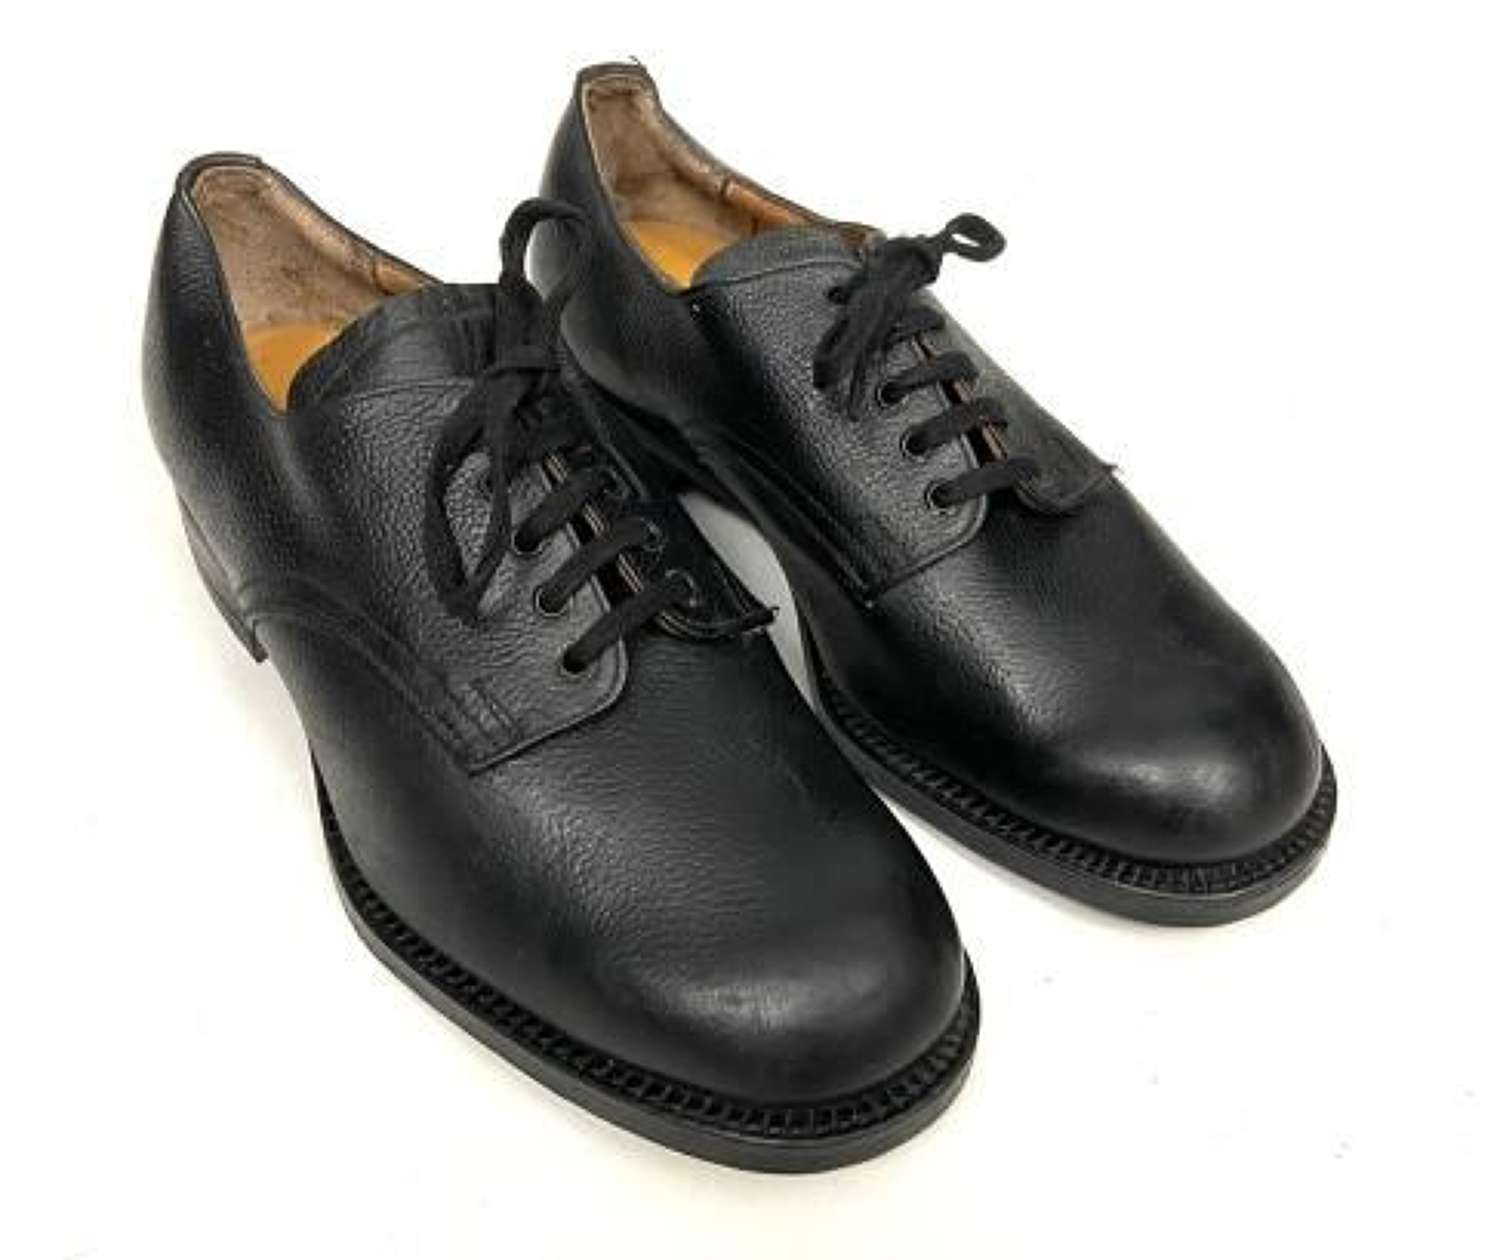 Original 1951 Dated Women's Issue Shoes by 'B. Toone & Co Ltd' - Size